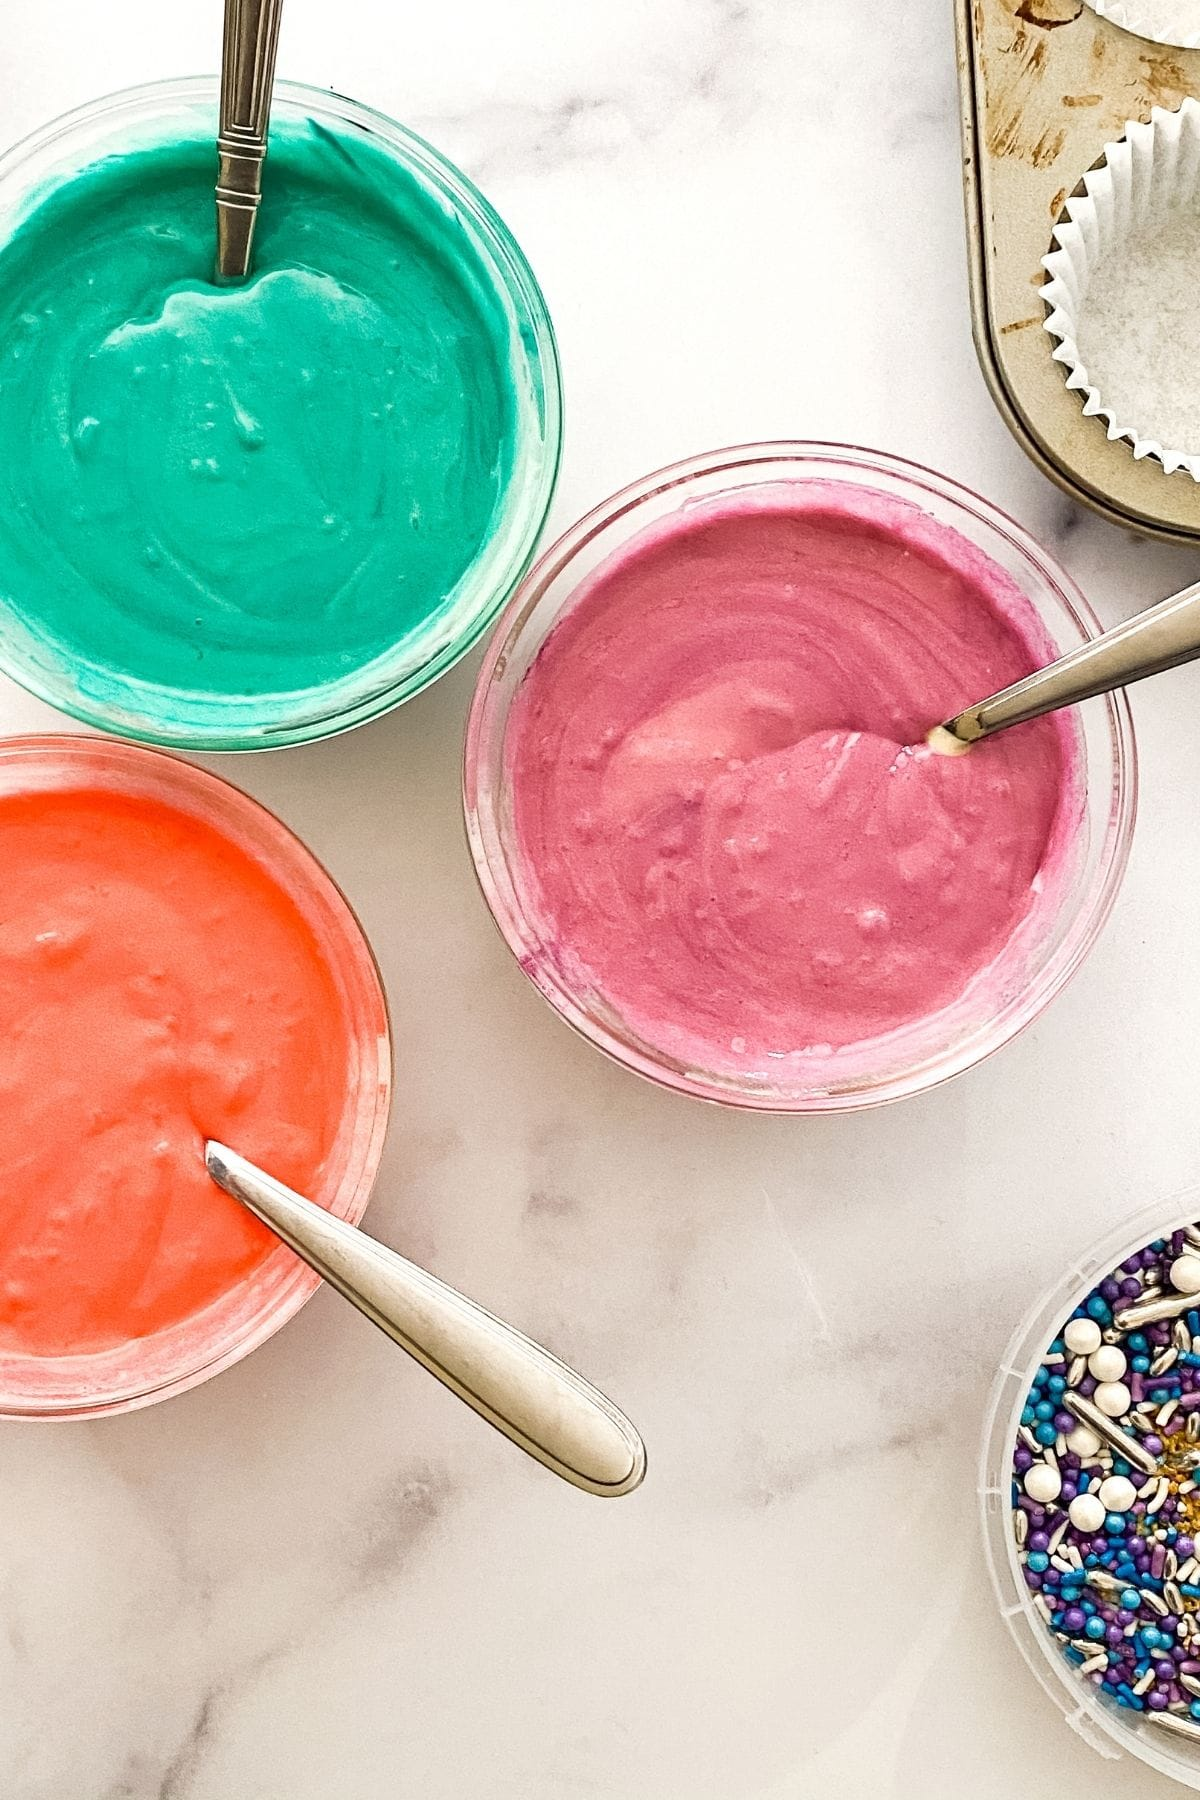 Adding color to cake mix